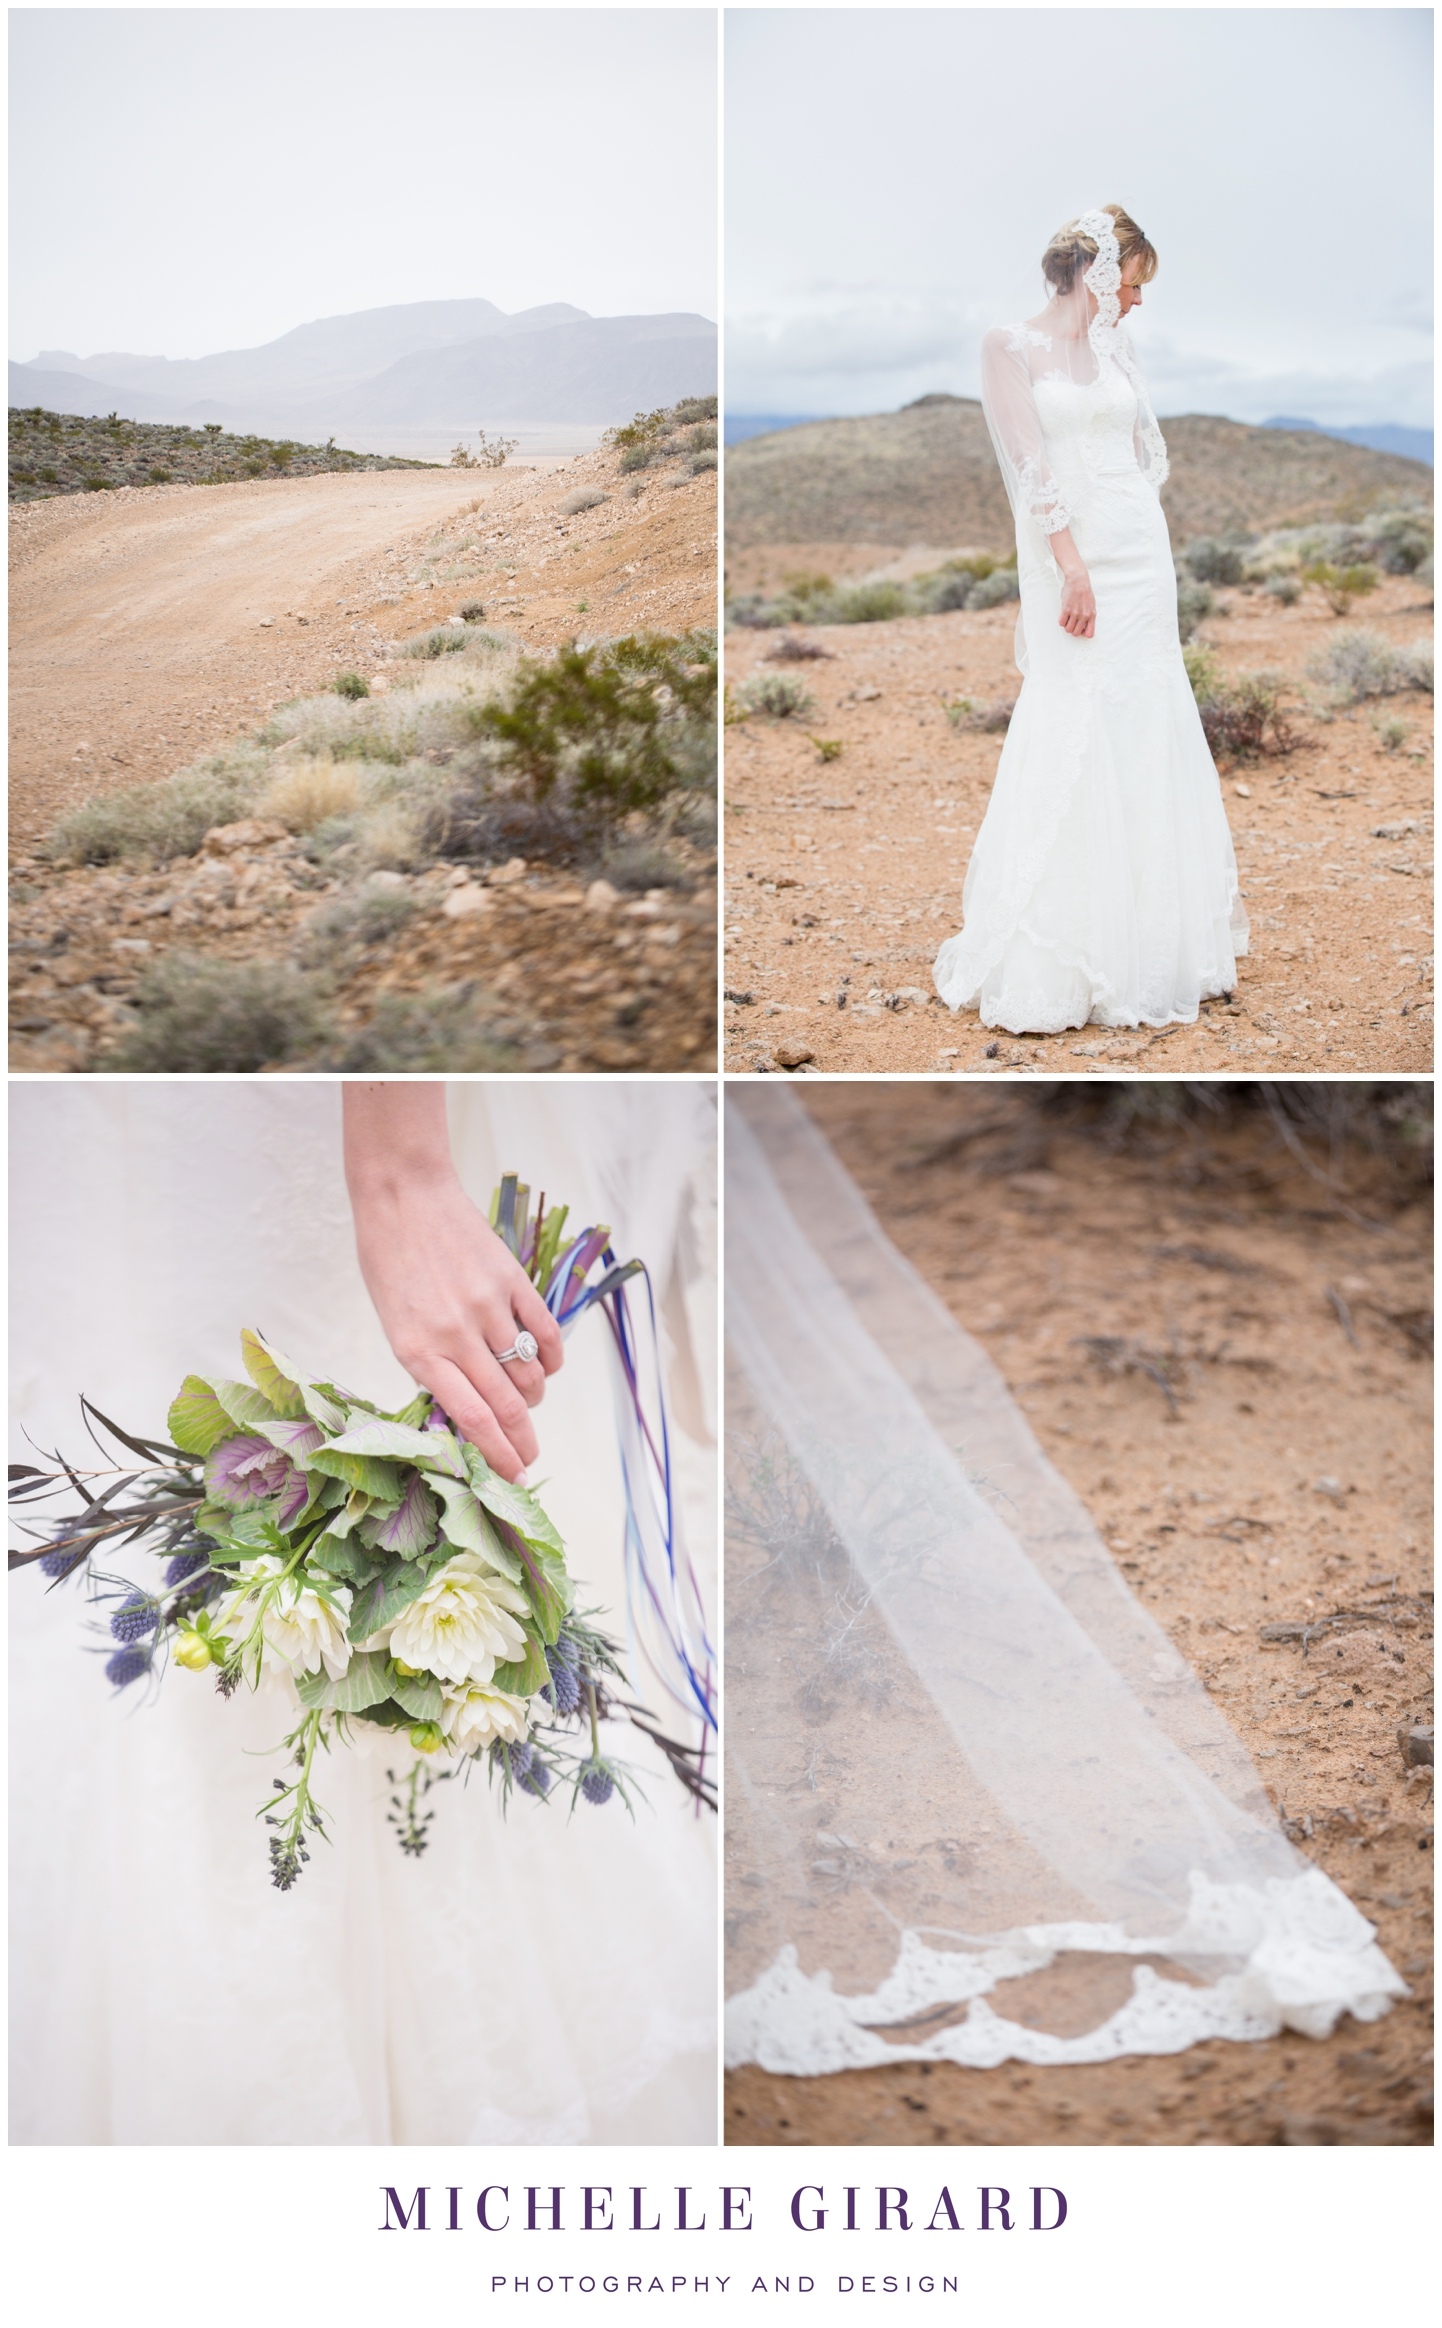 nevada-desert-lace-veil-michelle-girard-wedding-photography03.jpg